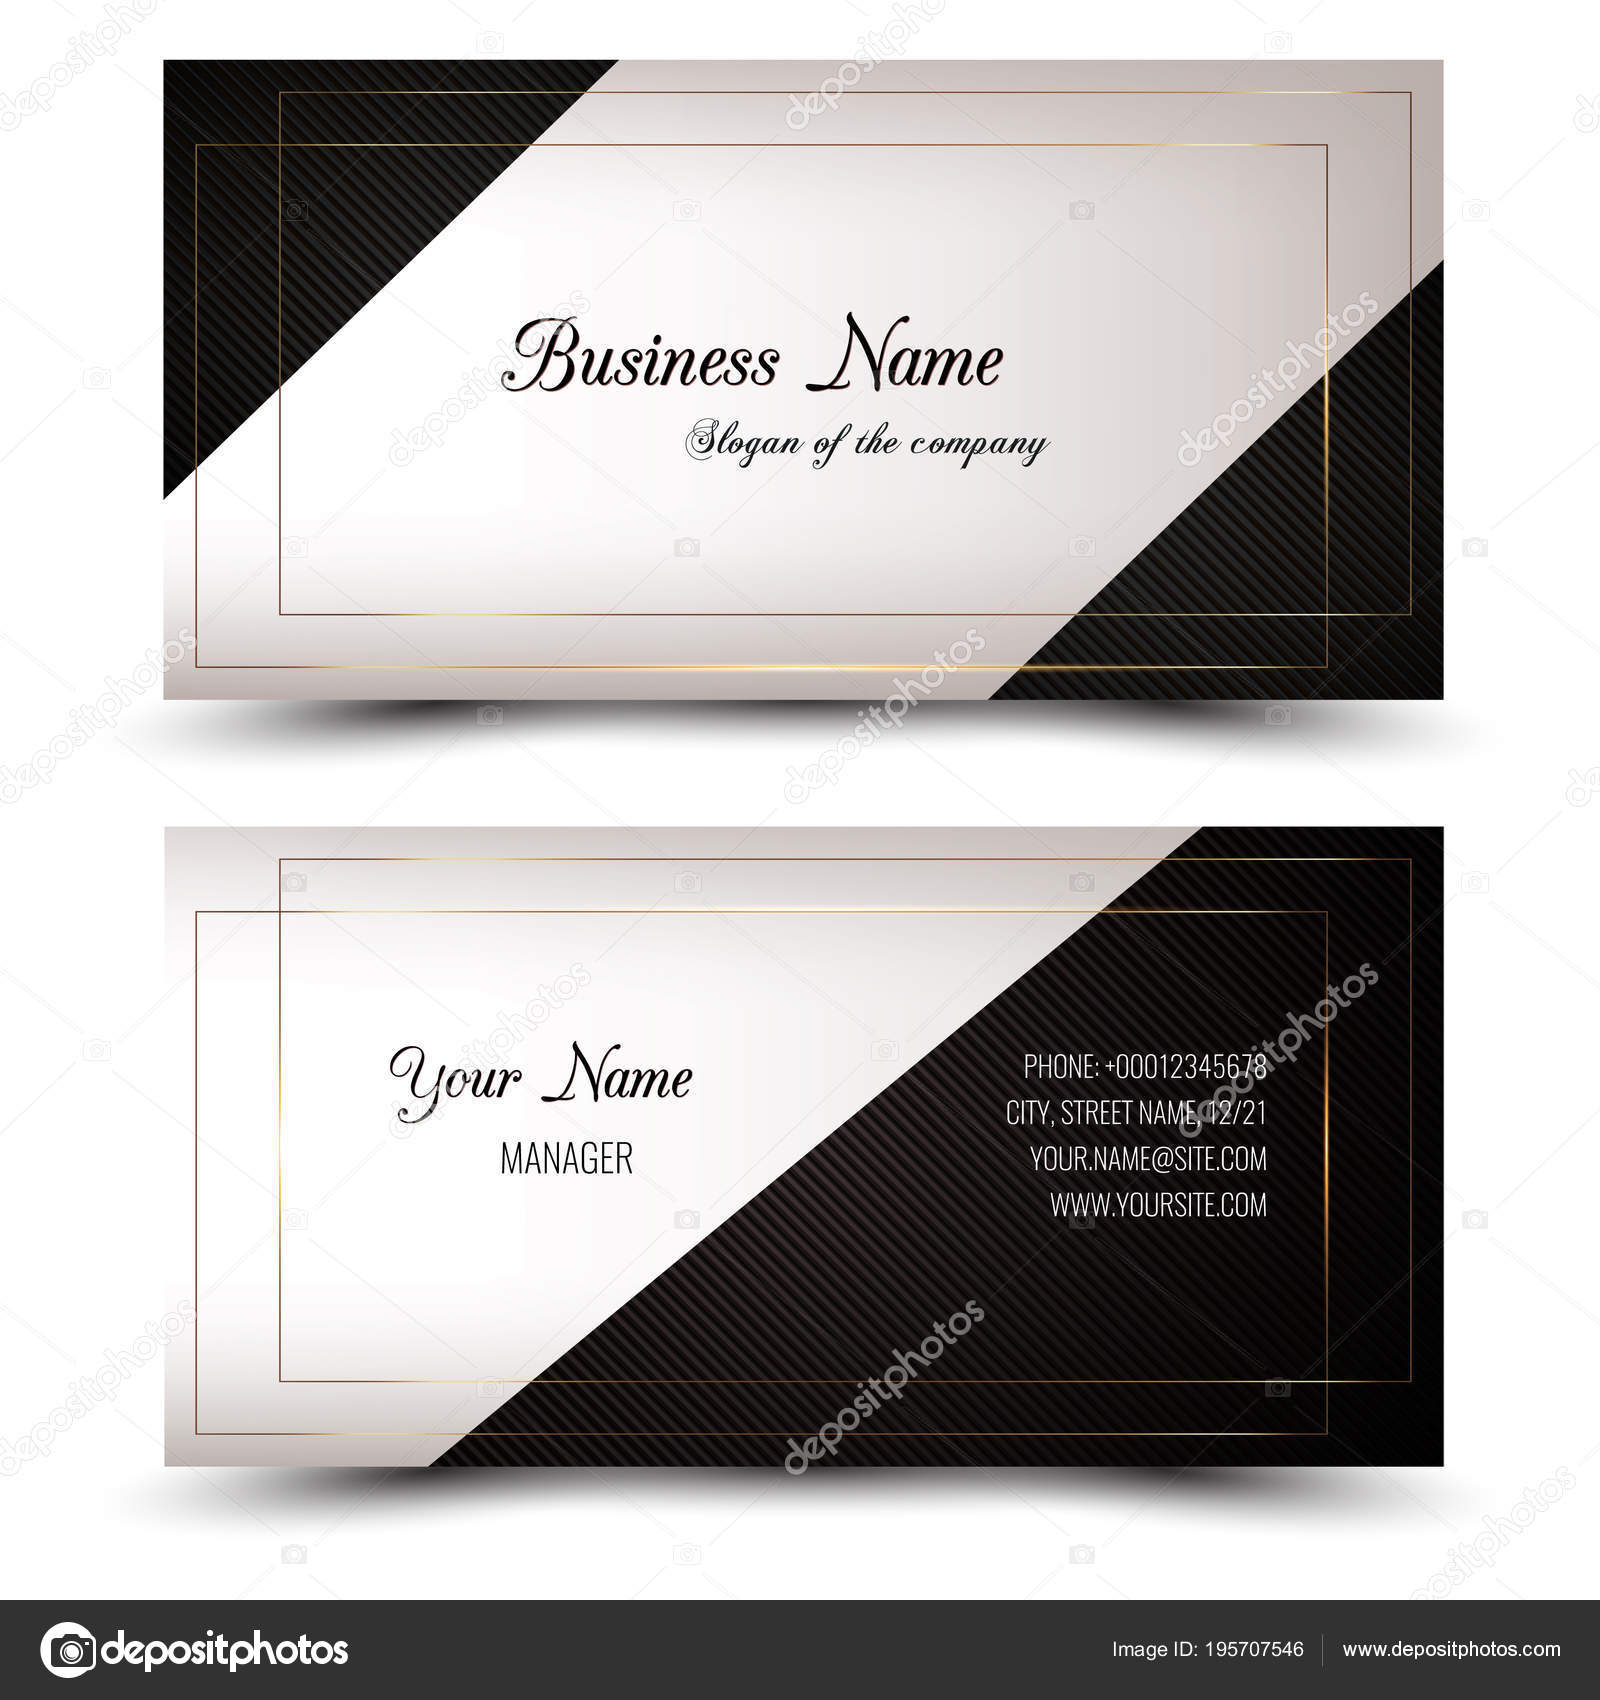 Elegant vector business card name card horizontal simple clean elegant vector business card name card horizontal simple clean template stock vector reheart Gallery